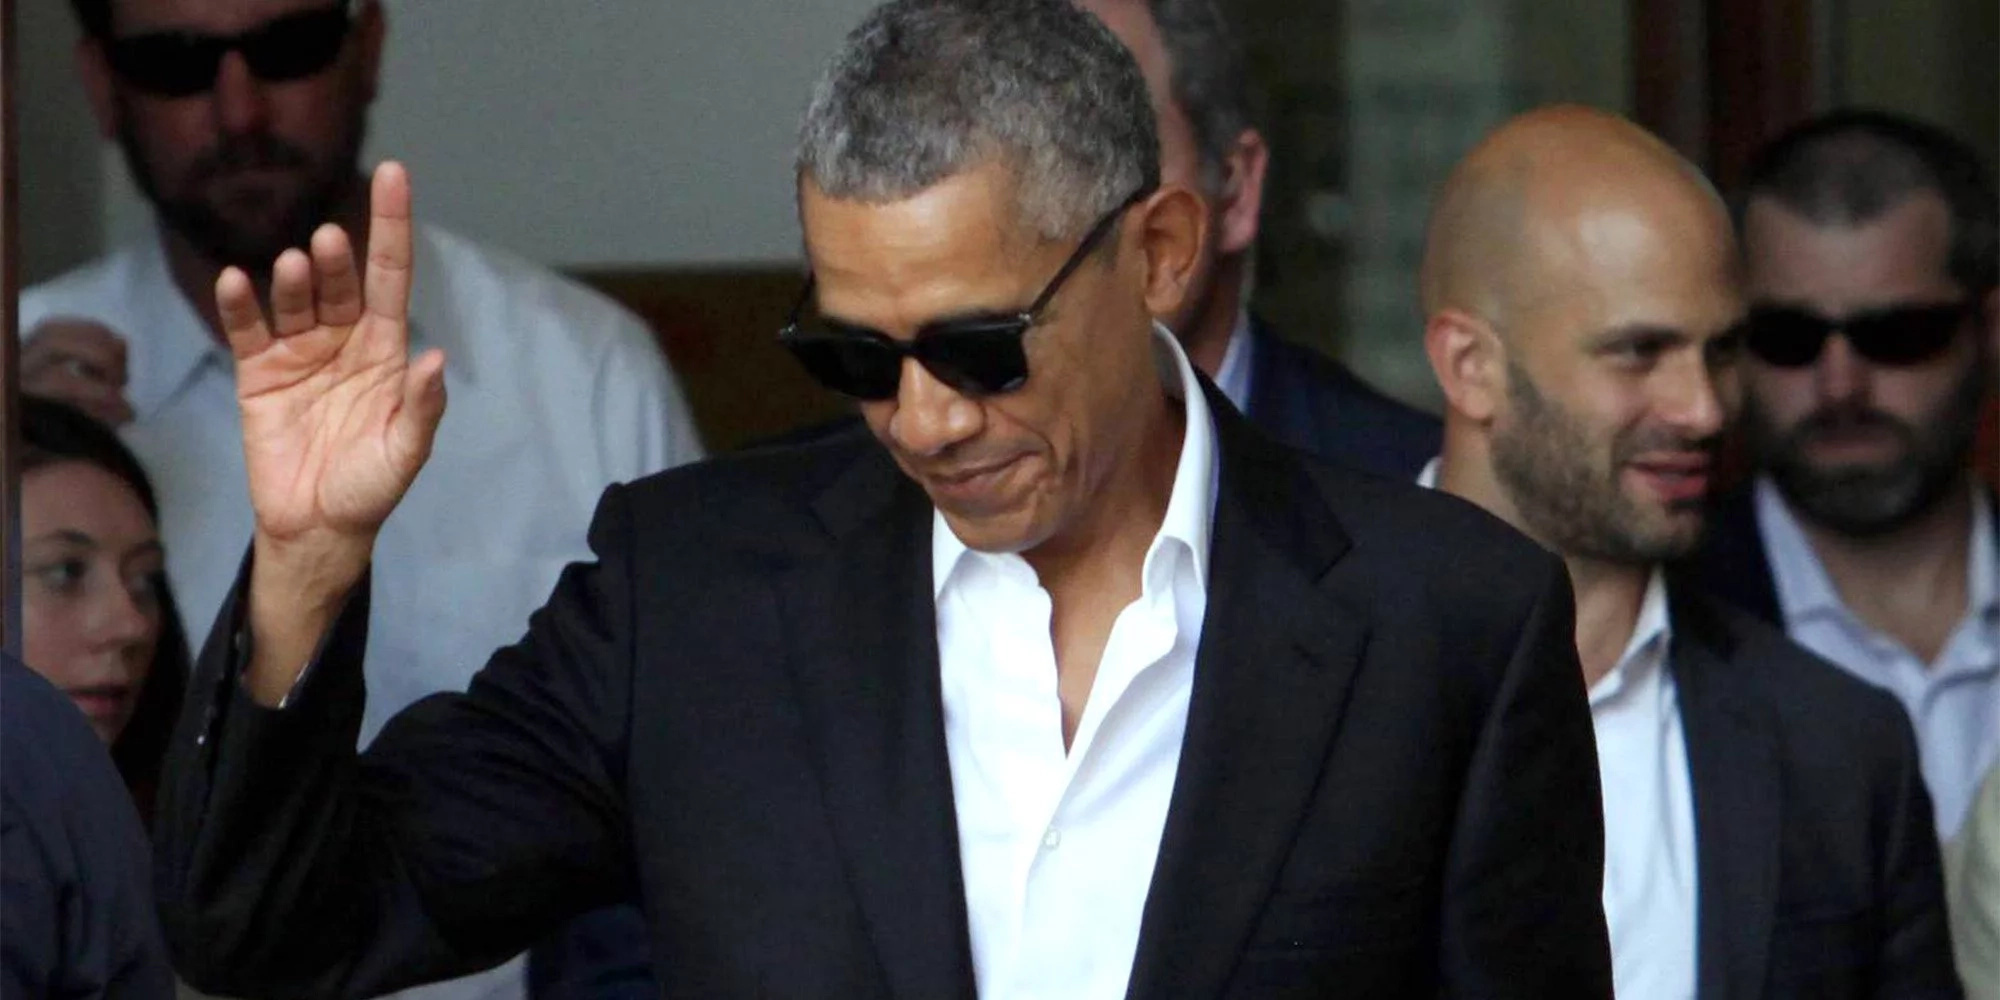 Obama's new look is a far cry from the formal suits and ties he wore during his two terms in office